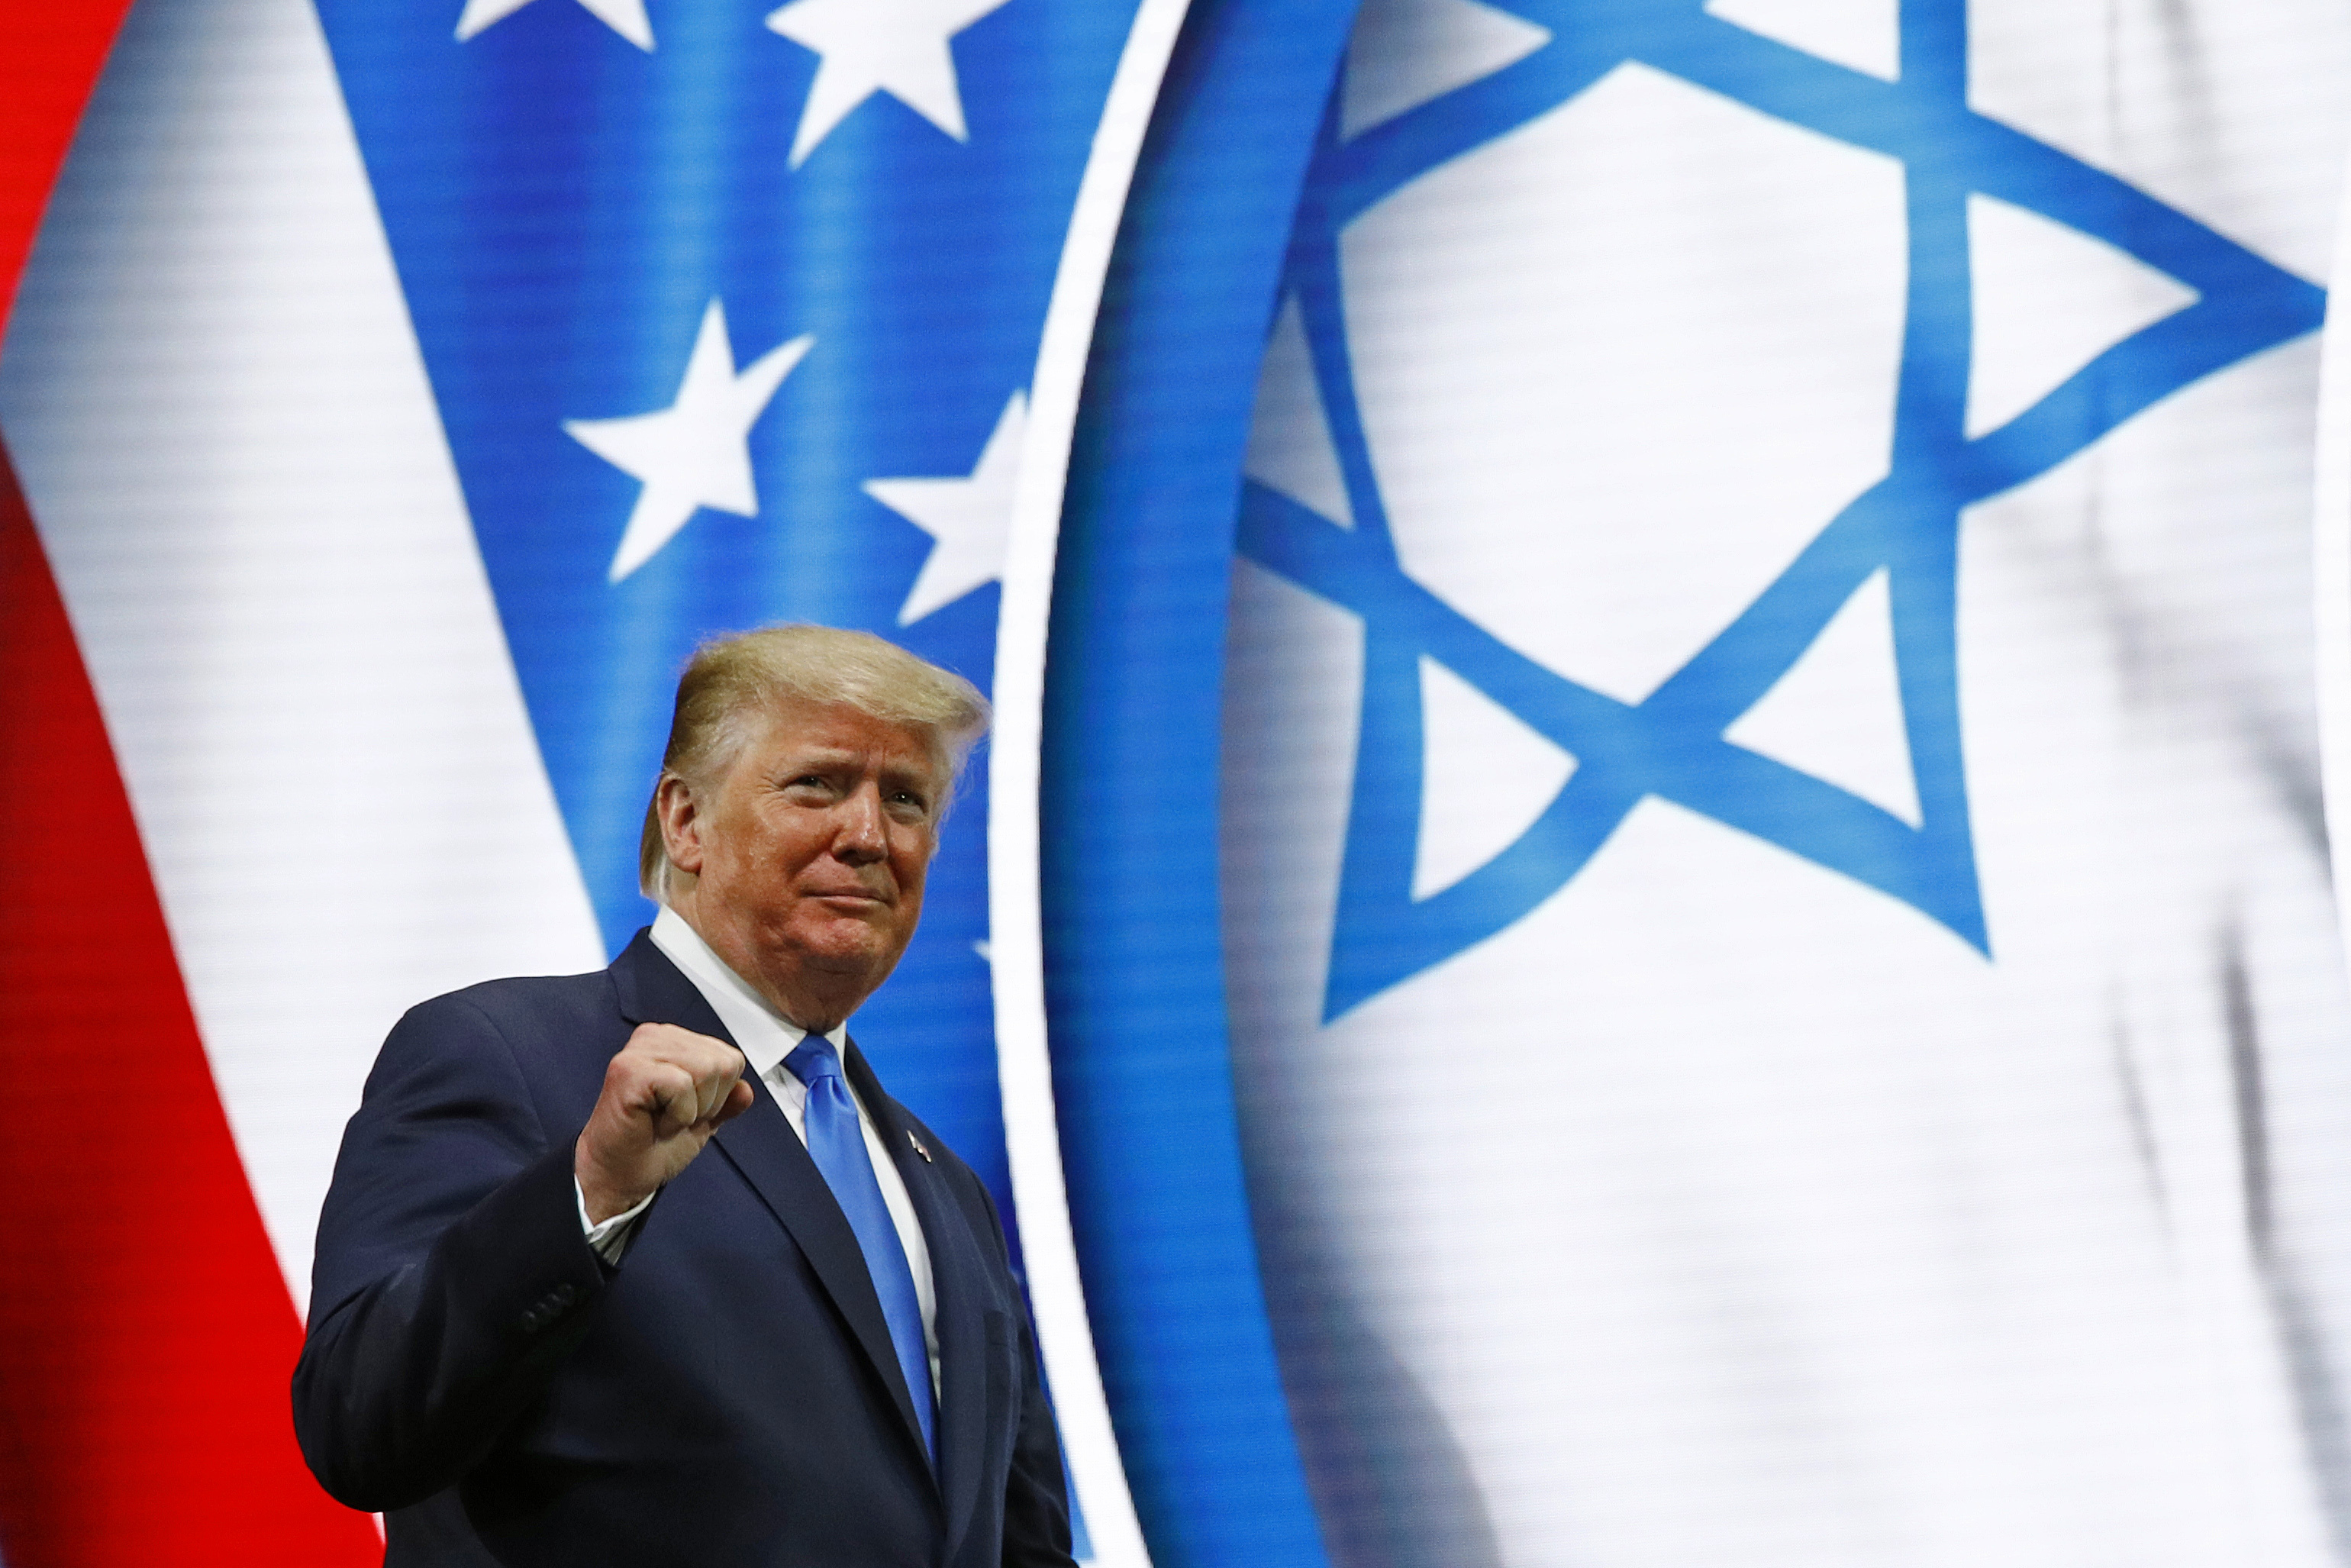 President Donald Trump walks onstage to speak at the Israeli American Council National Summit in Hollywood, Fla., on Dec. 7, 2019.